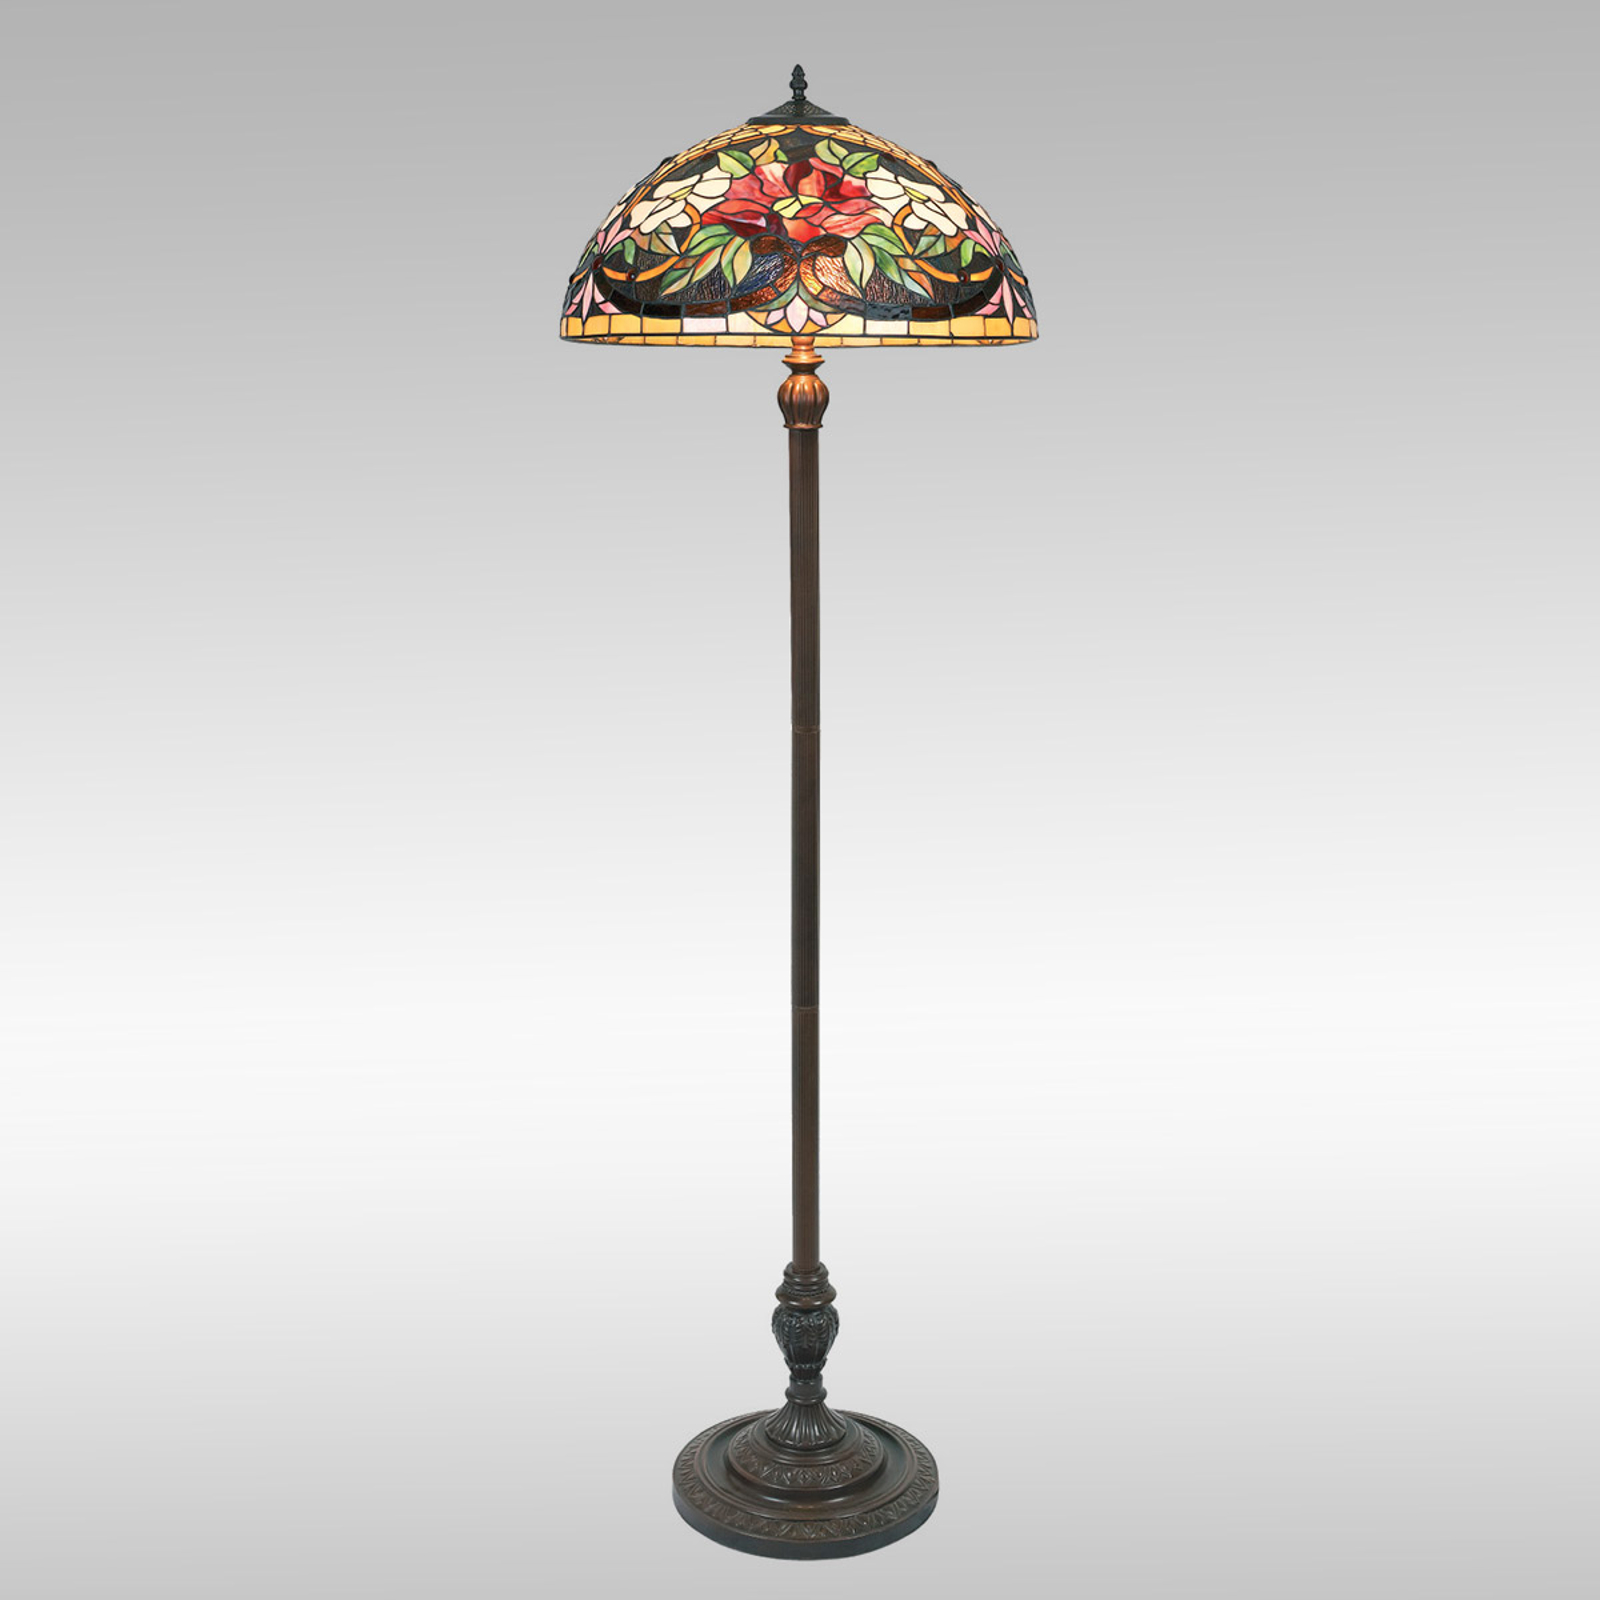 Colourful floor lamp ARIADNE in the Tiffany style_1032147_1